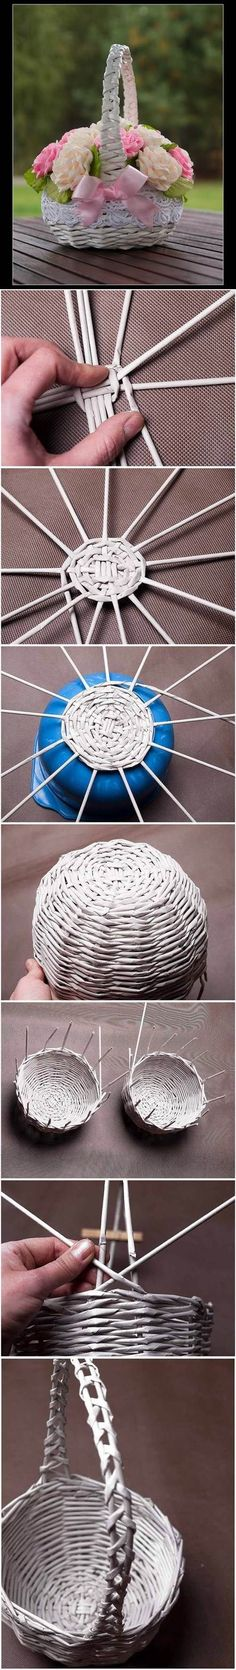 Periódico DIY Tubos Weaving Basket 2